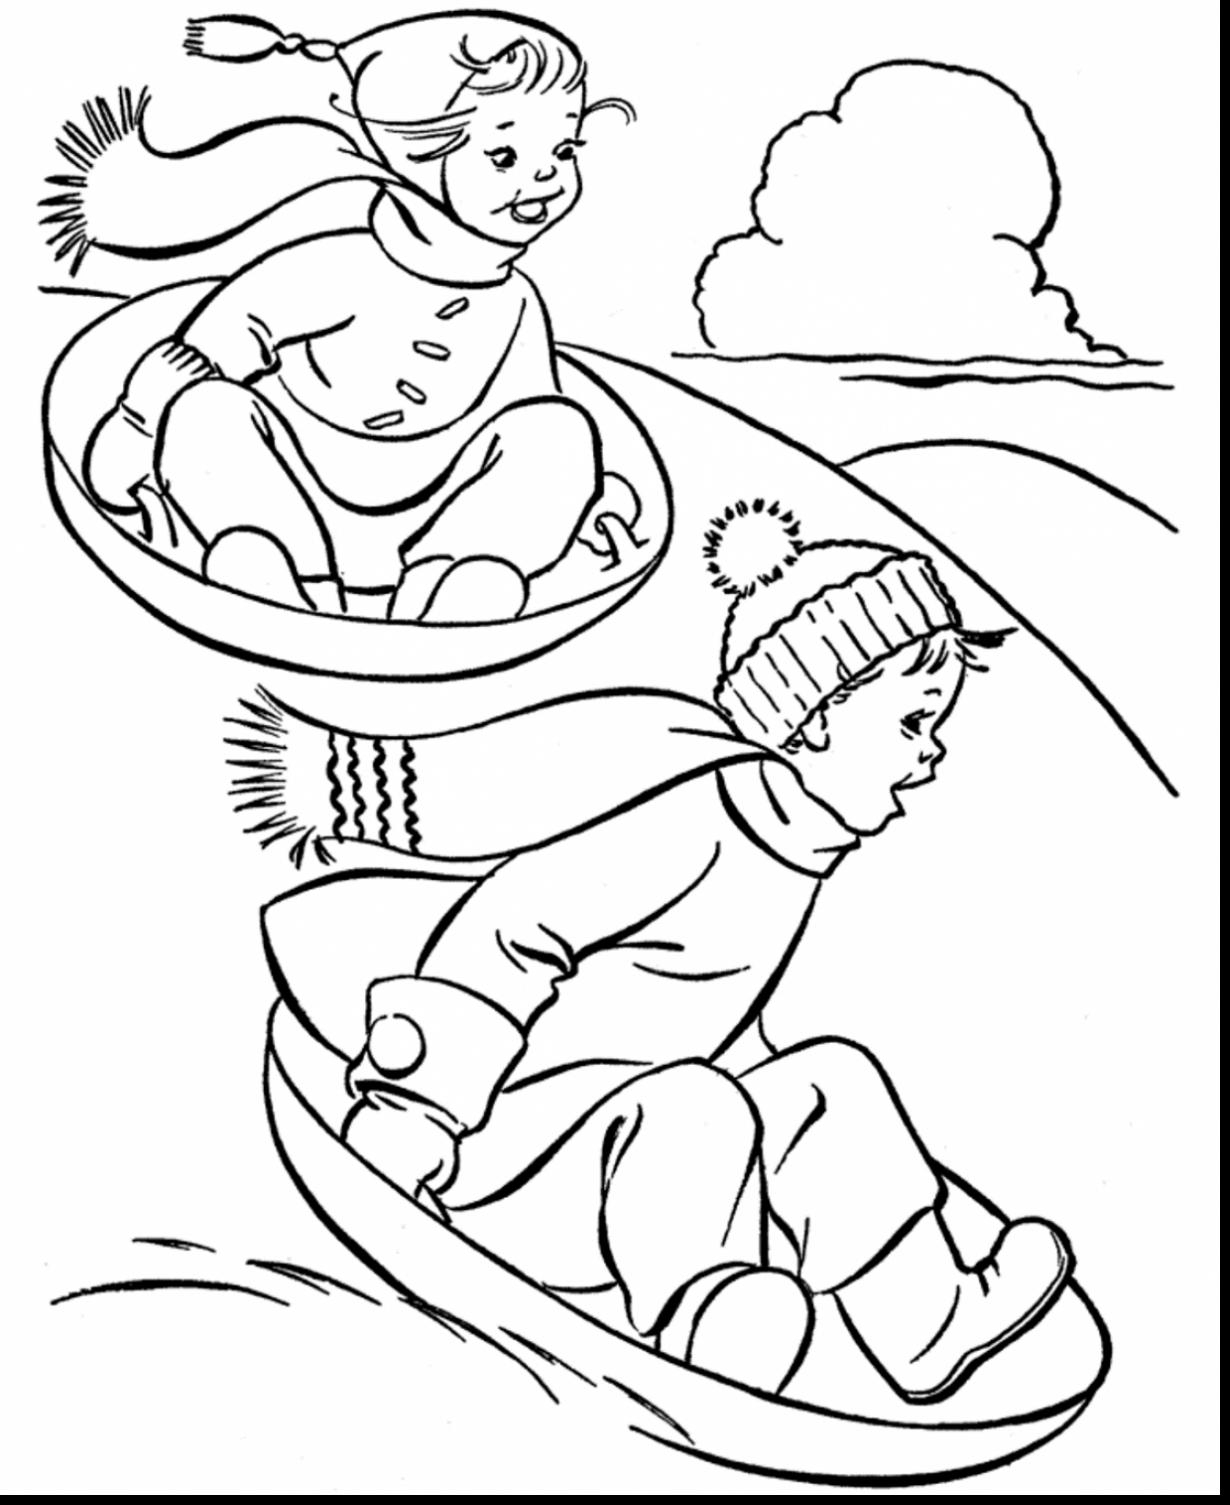 Coloring Pages : Printable Winterg Pages To Print And Color Free - Free Printable Winter Coloring Pages